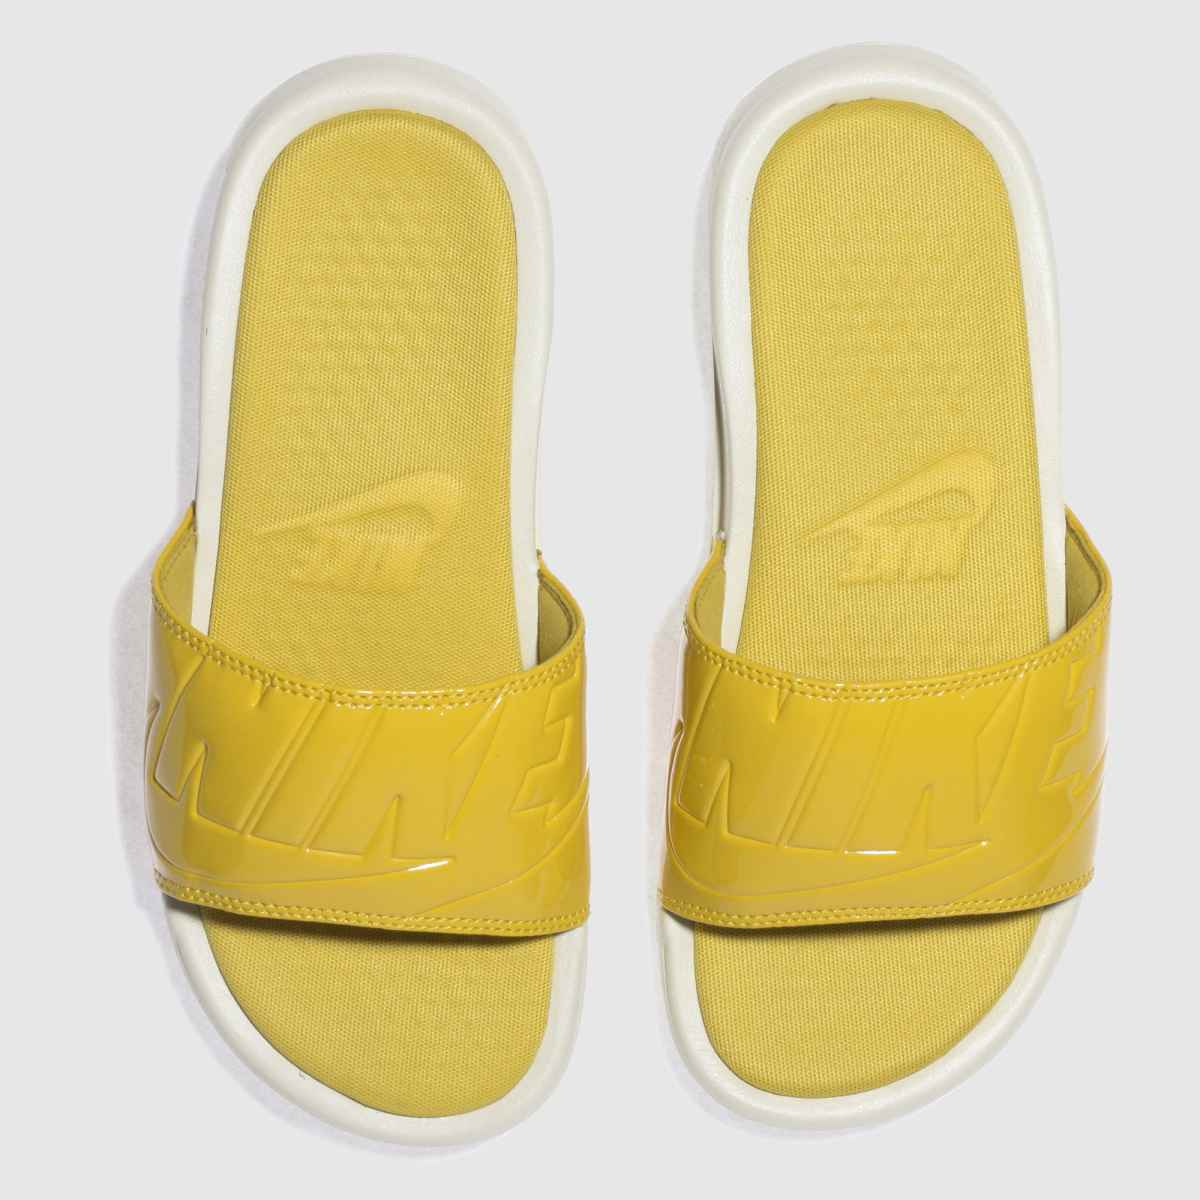 Nike Yellow Benassi Ultra Lux Sandals